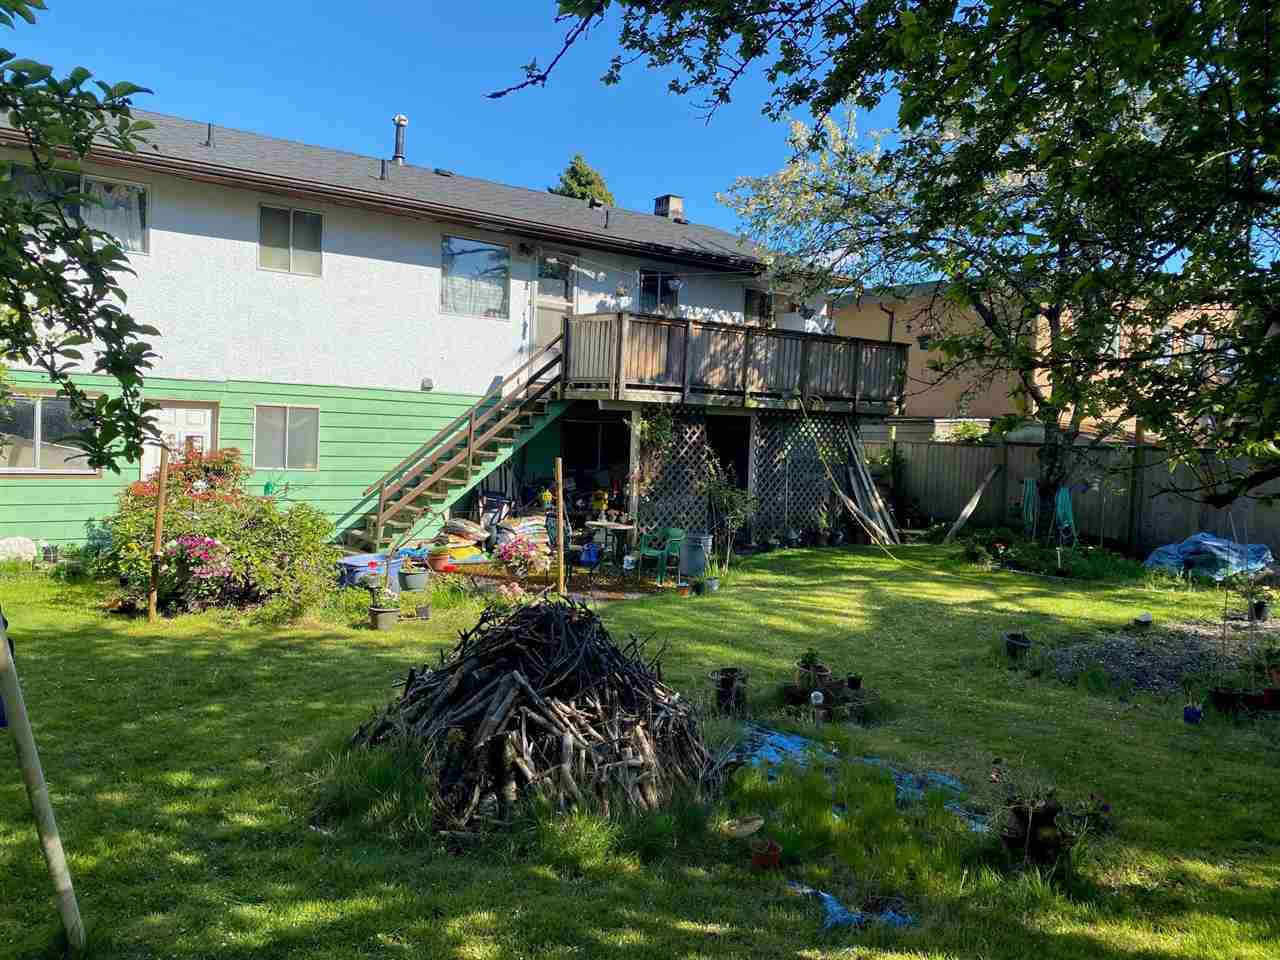 4507 45 STREET - Port Guichon House/Single Family for sale, 3 Bedrooms (R2575186) - #5